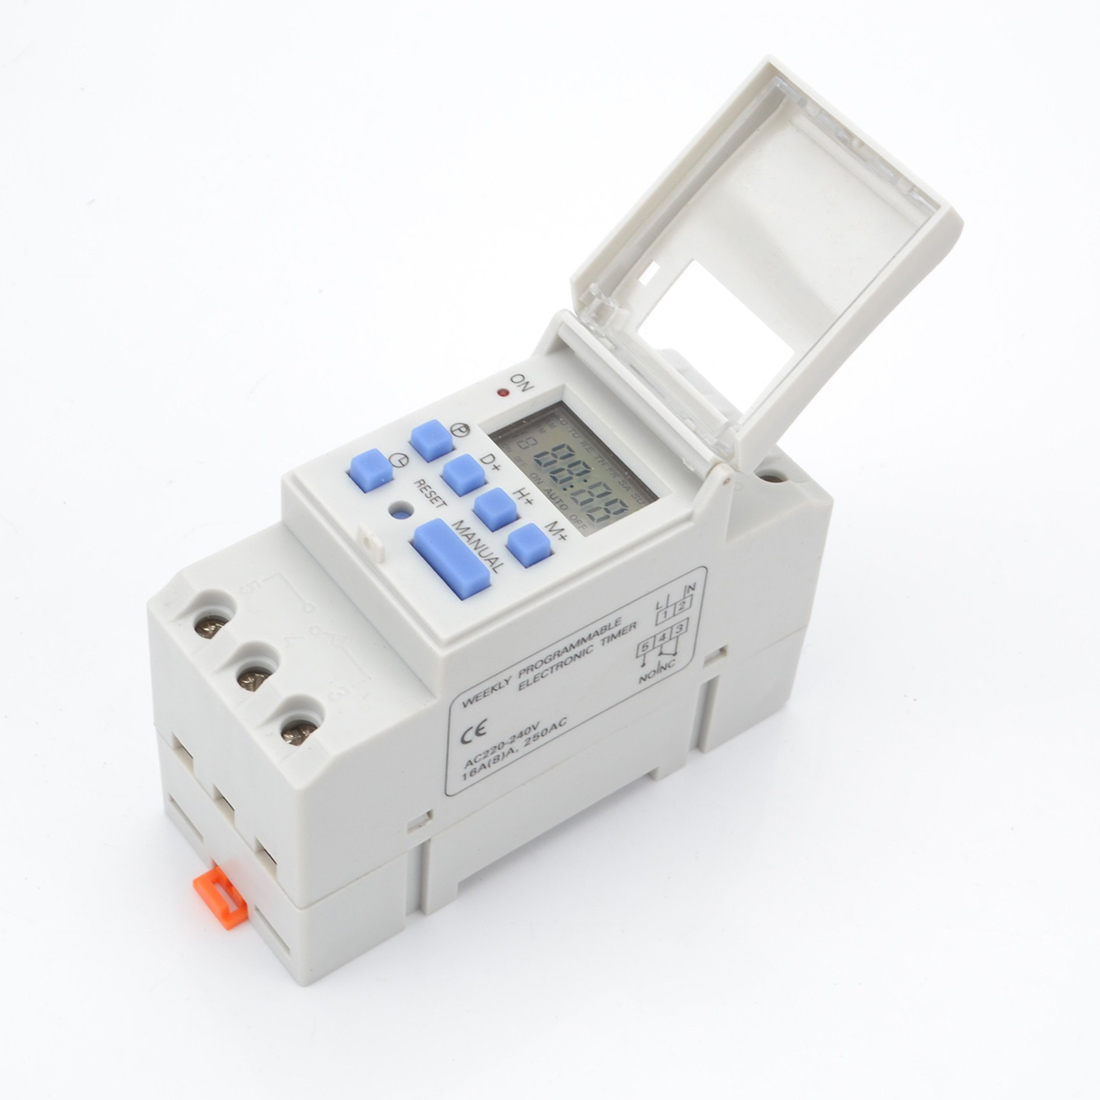 Din Programmable Weekly Rail Timer Smart Electrical Timer Switch For Timers Socket Switch Home Improvement For Relay Switch Electrical Equipments & Supplies